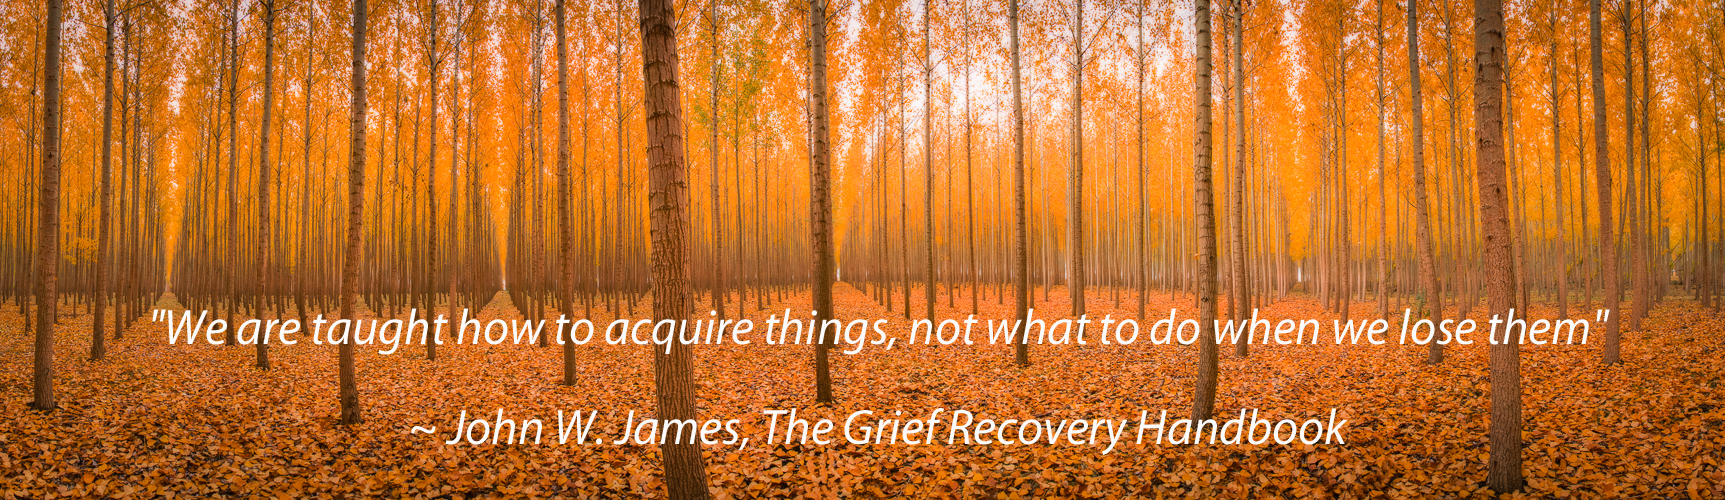 taught to acquire loss grief recovery method what to do when we lose